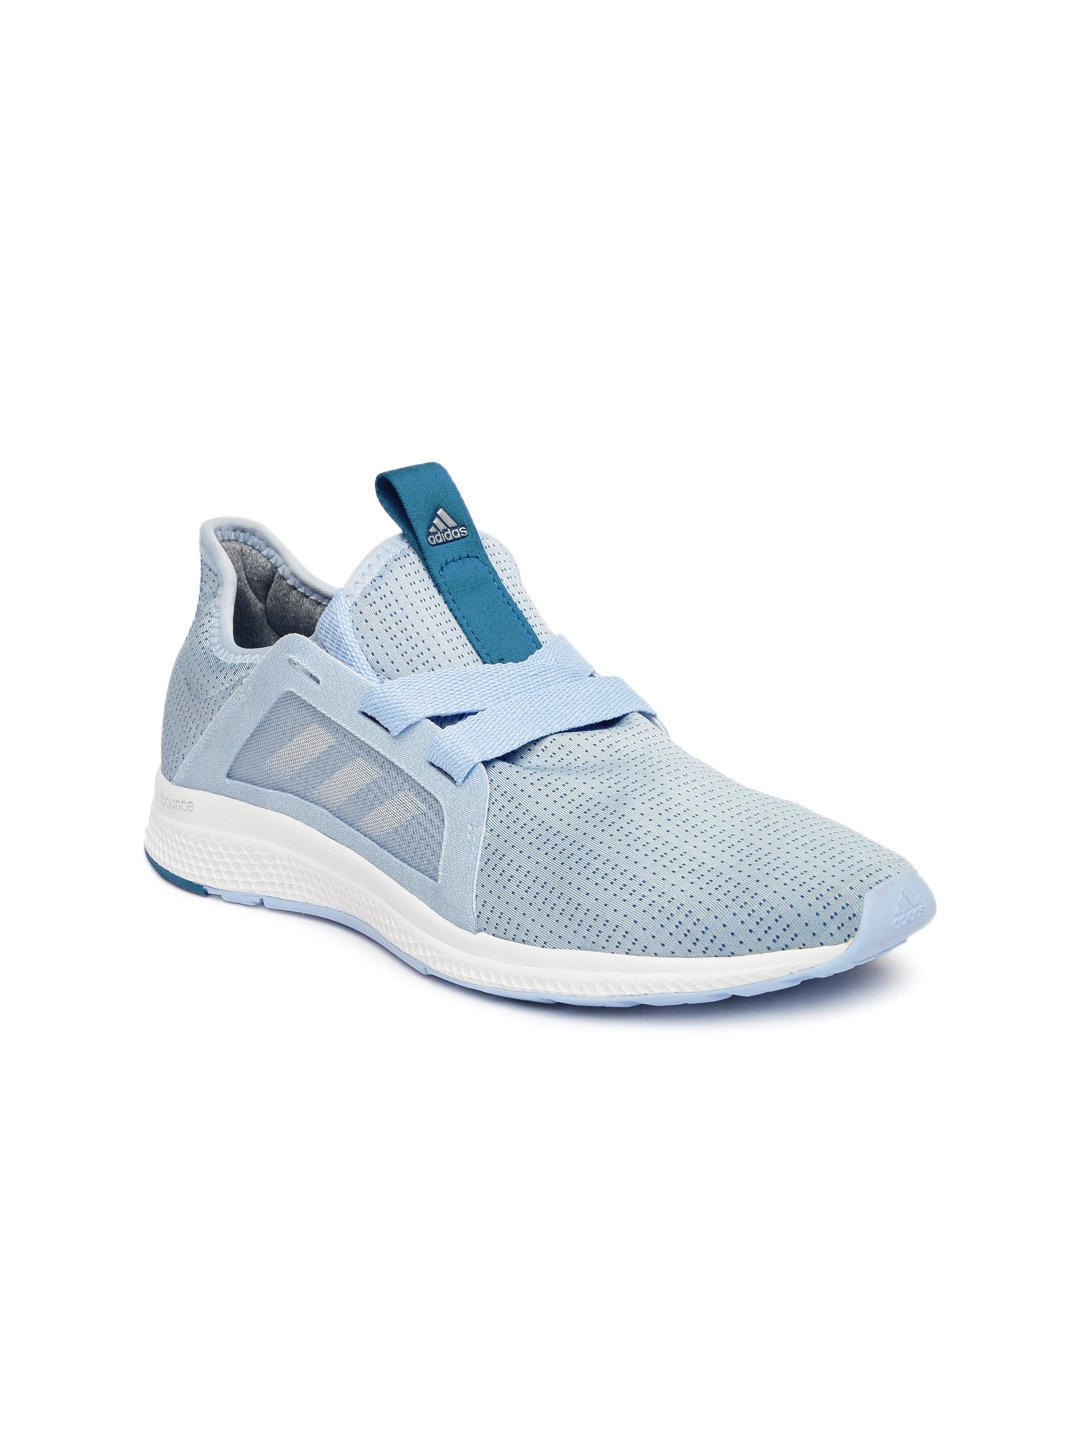 Edge Lux Shoes in 2019   Products   Adidas, Blue adidas